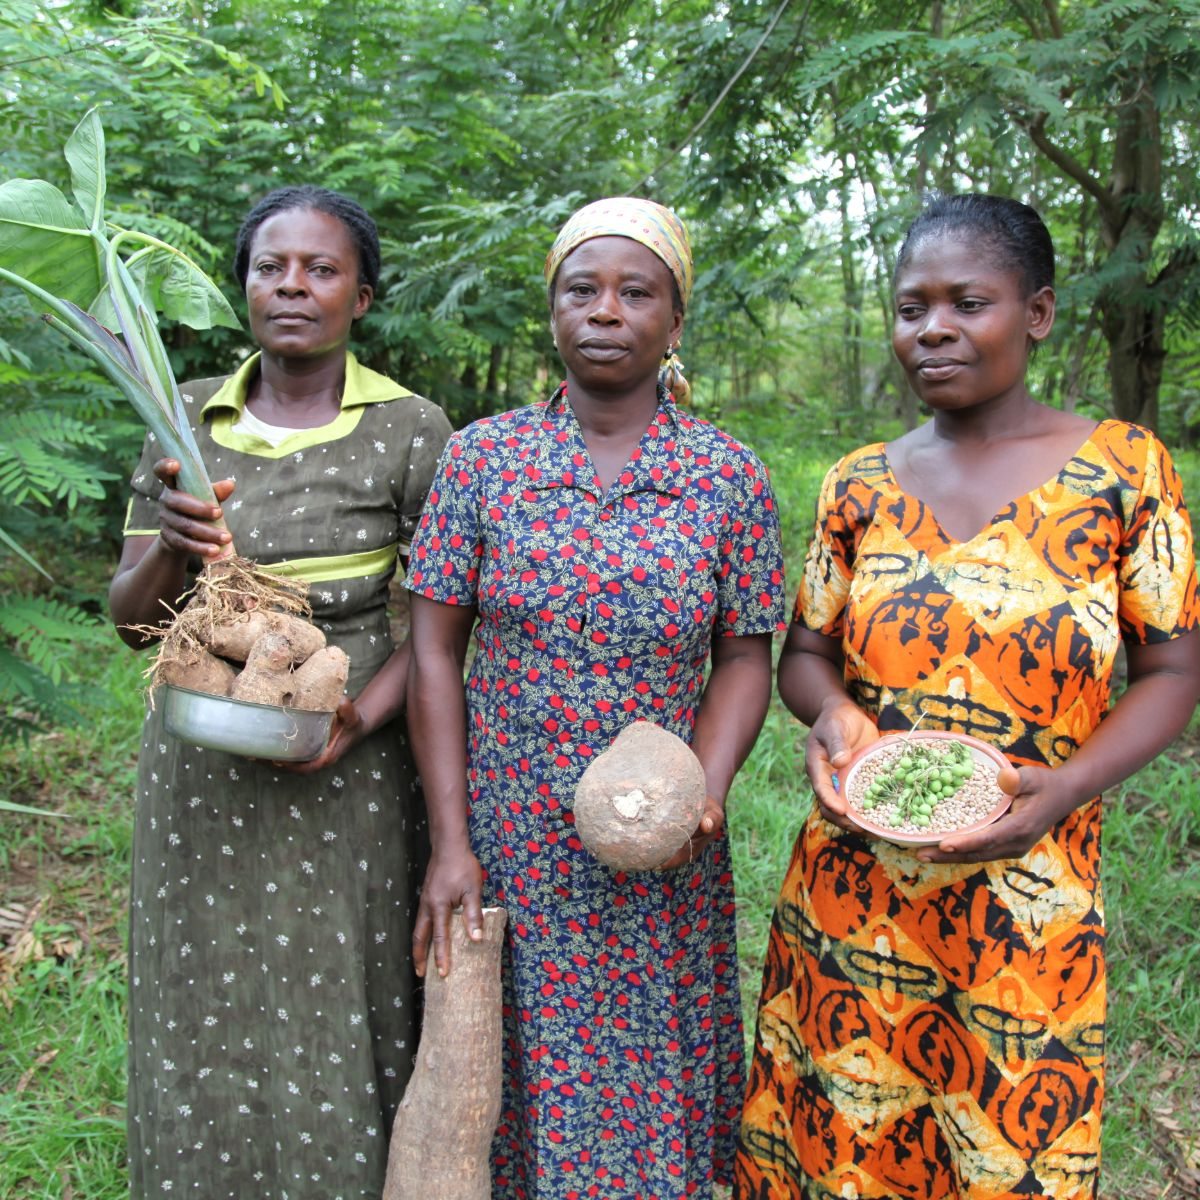 Global justice now women seeds